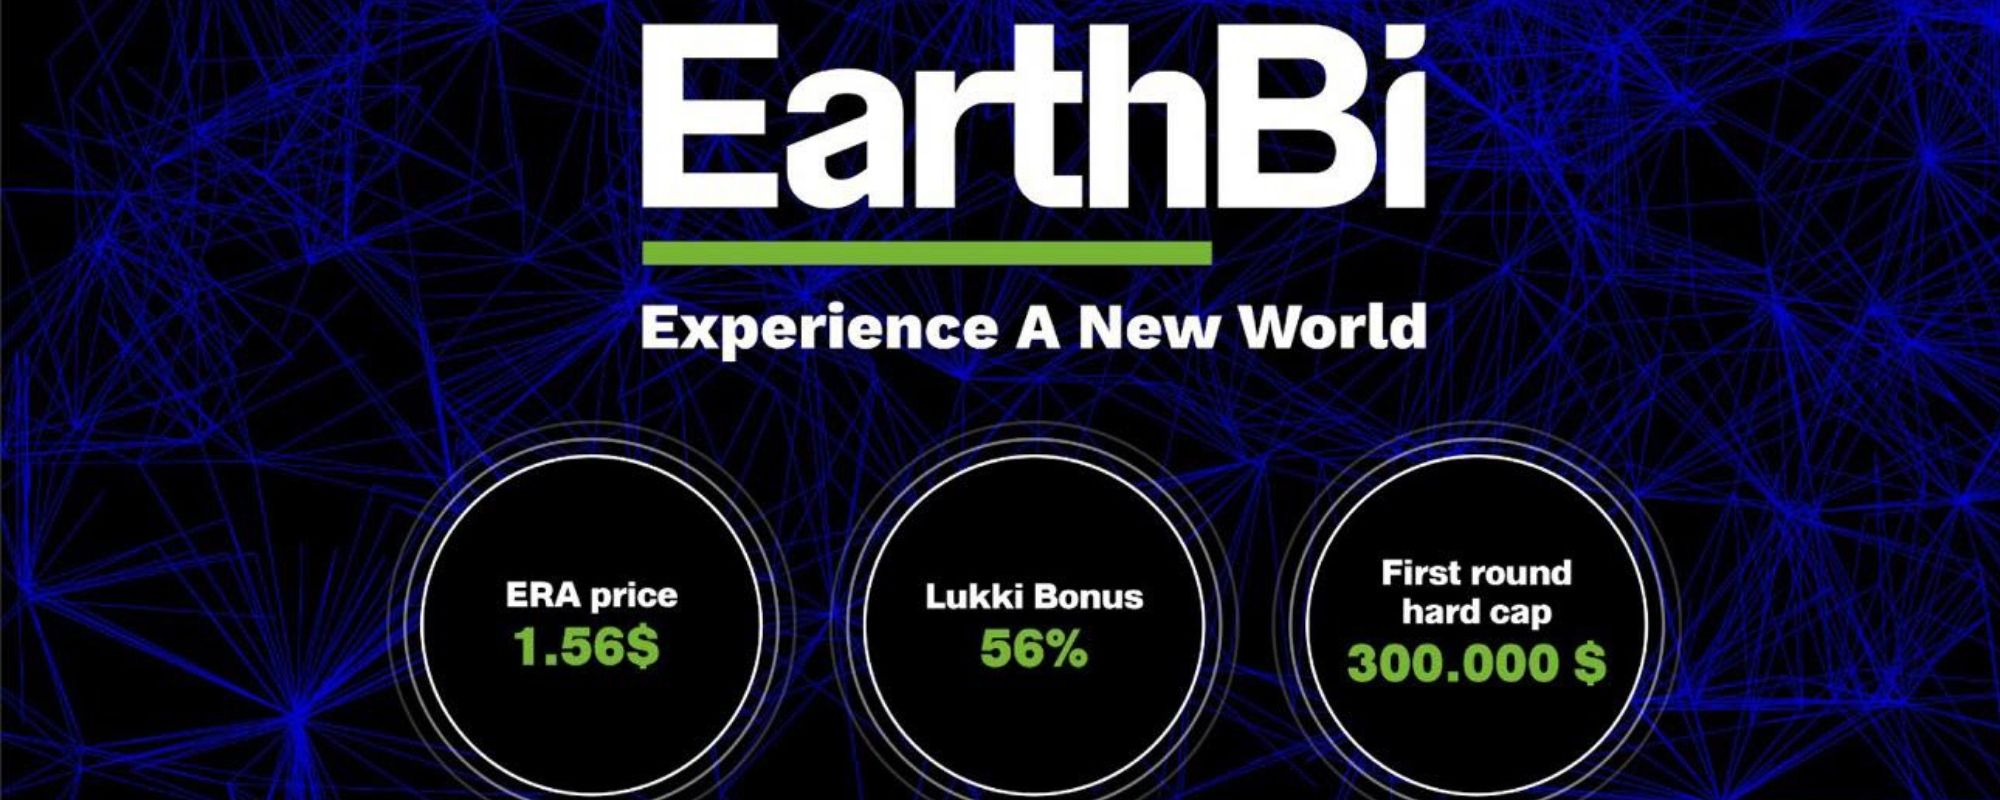 Today EarthBi (ERA) IEO has officially started on Lukki Exchange